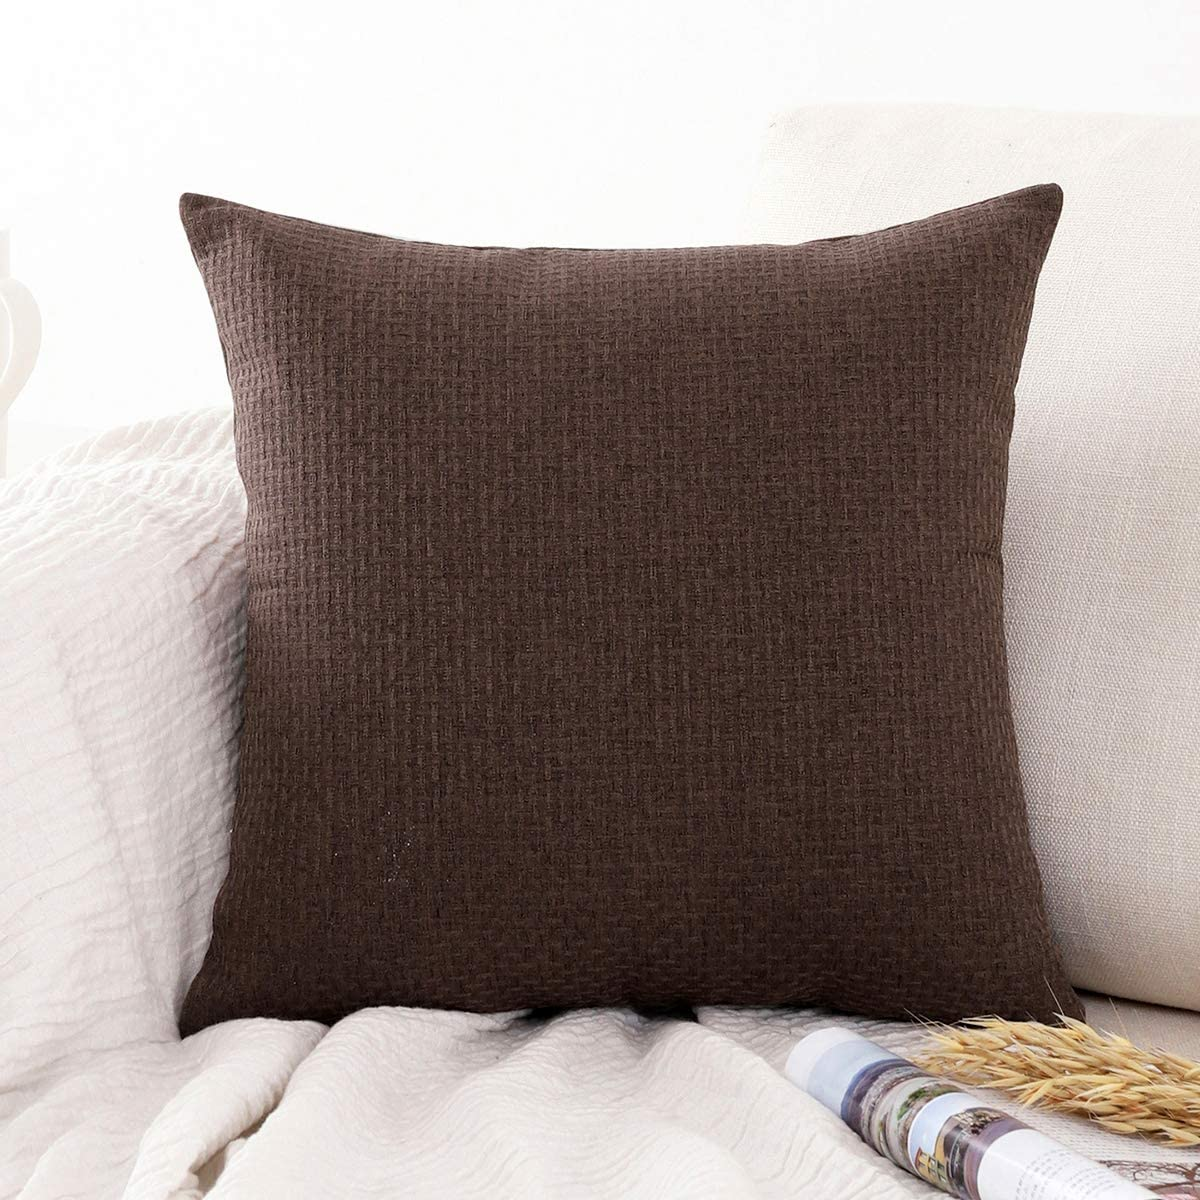 Jepeak Comfy Cotton Linen Throw Pillow Cover Rattan Weaved Pattern Cushion Case, Solid Thickened Farmhouse Modern Decorative Square Pillow Case for Sofa Couch Bed (Coffee, 24 x 24 Inches)